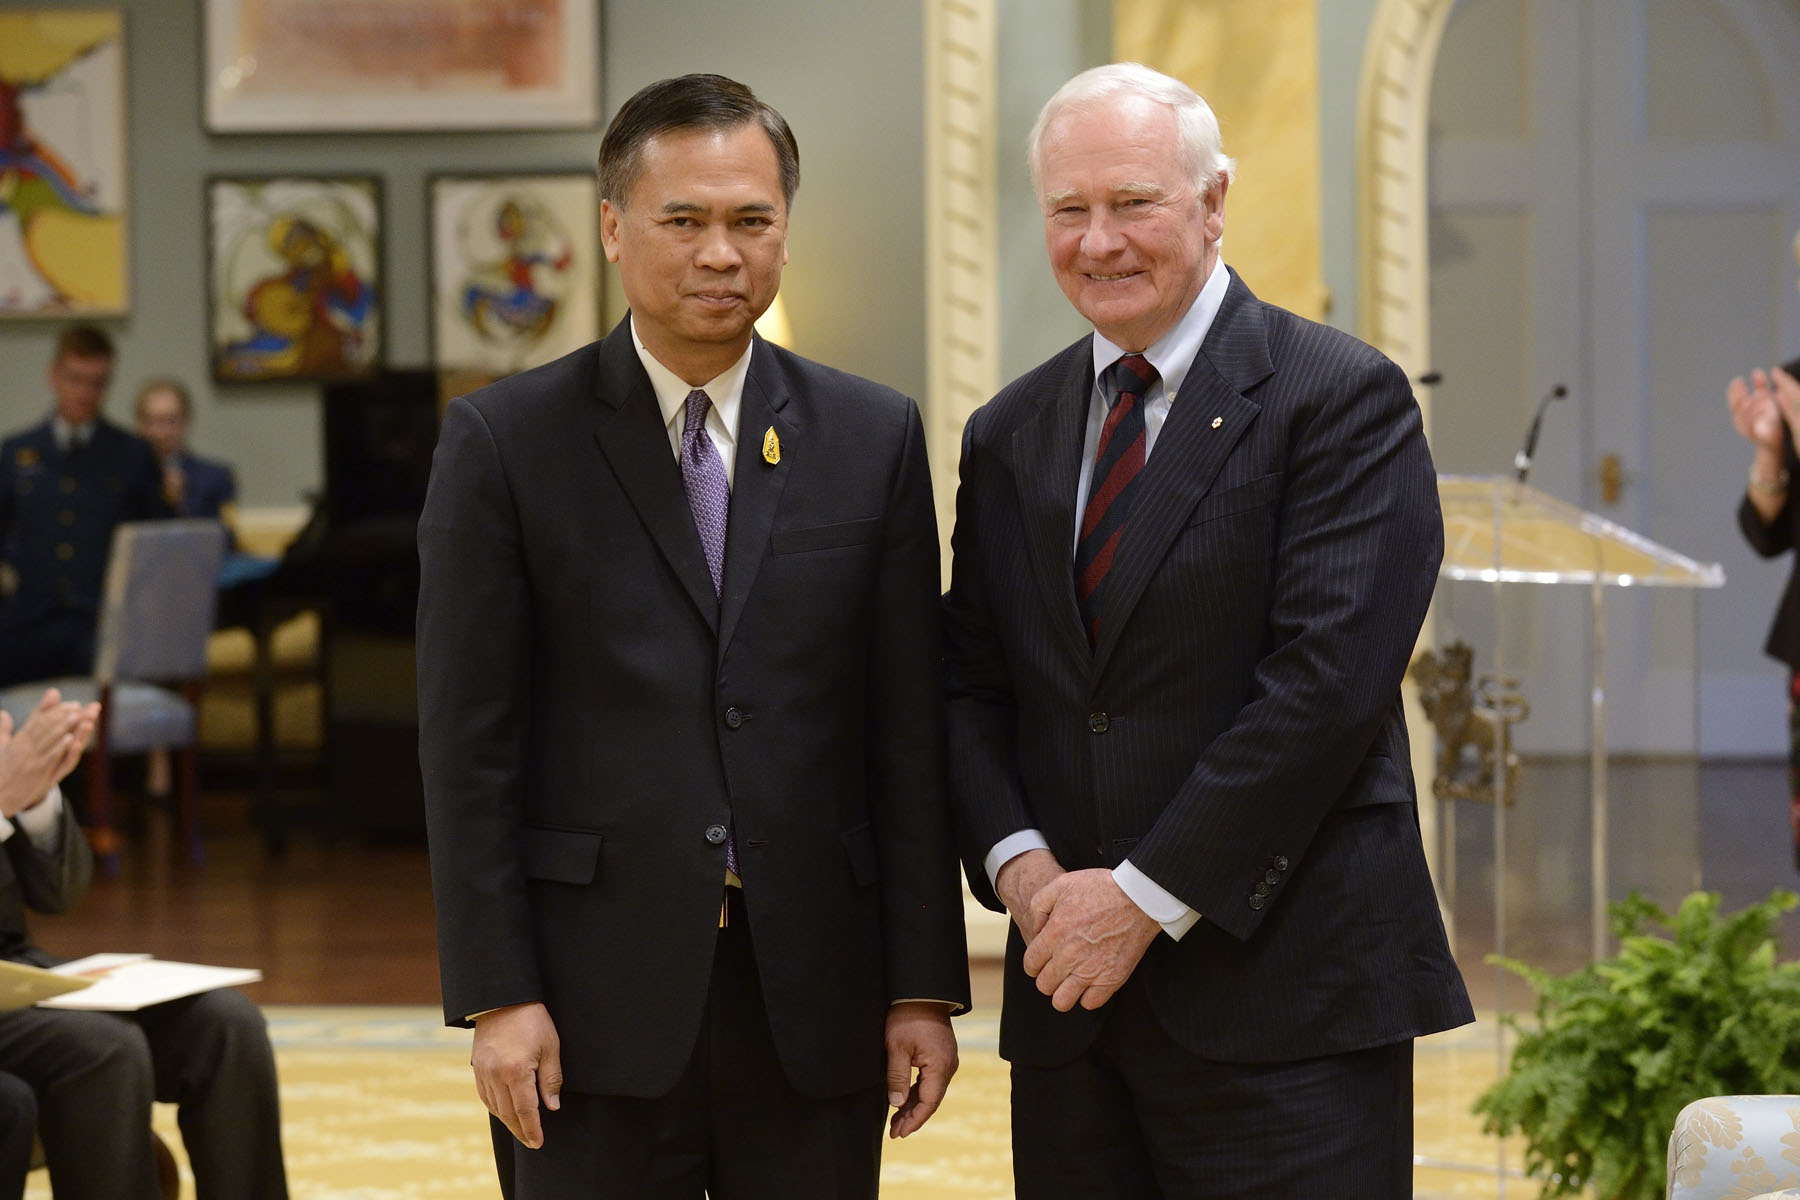 He first received the letters of credence of His Excellency Vijavat Isarabhakdi, Ambassador of the Kingdom of Thailand.